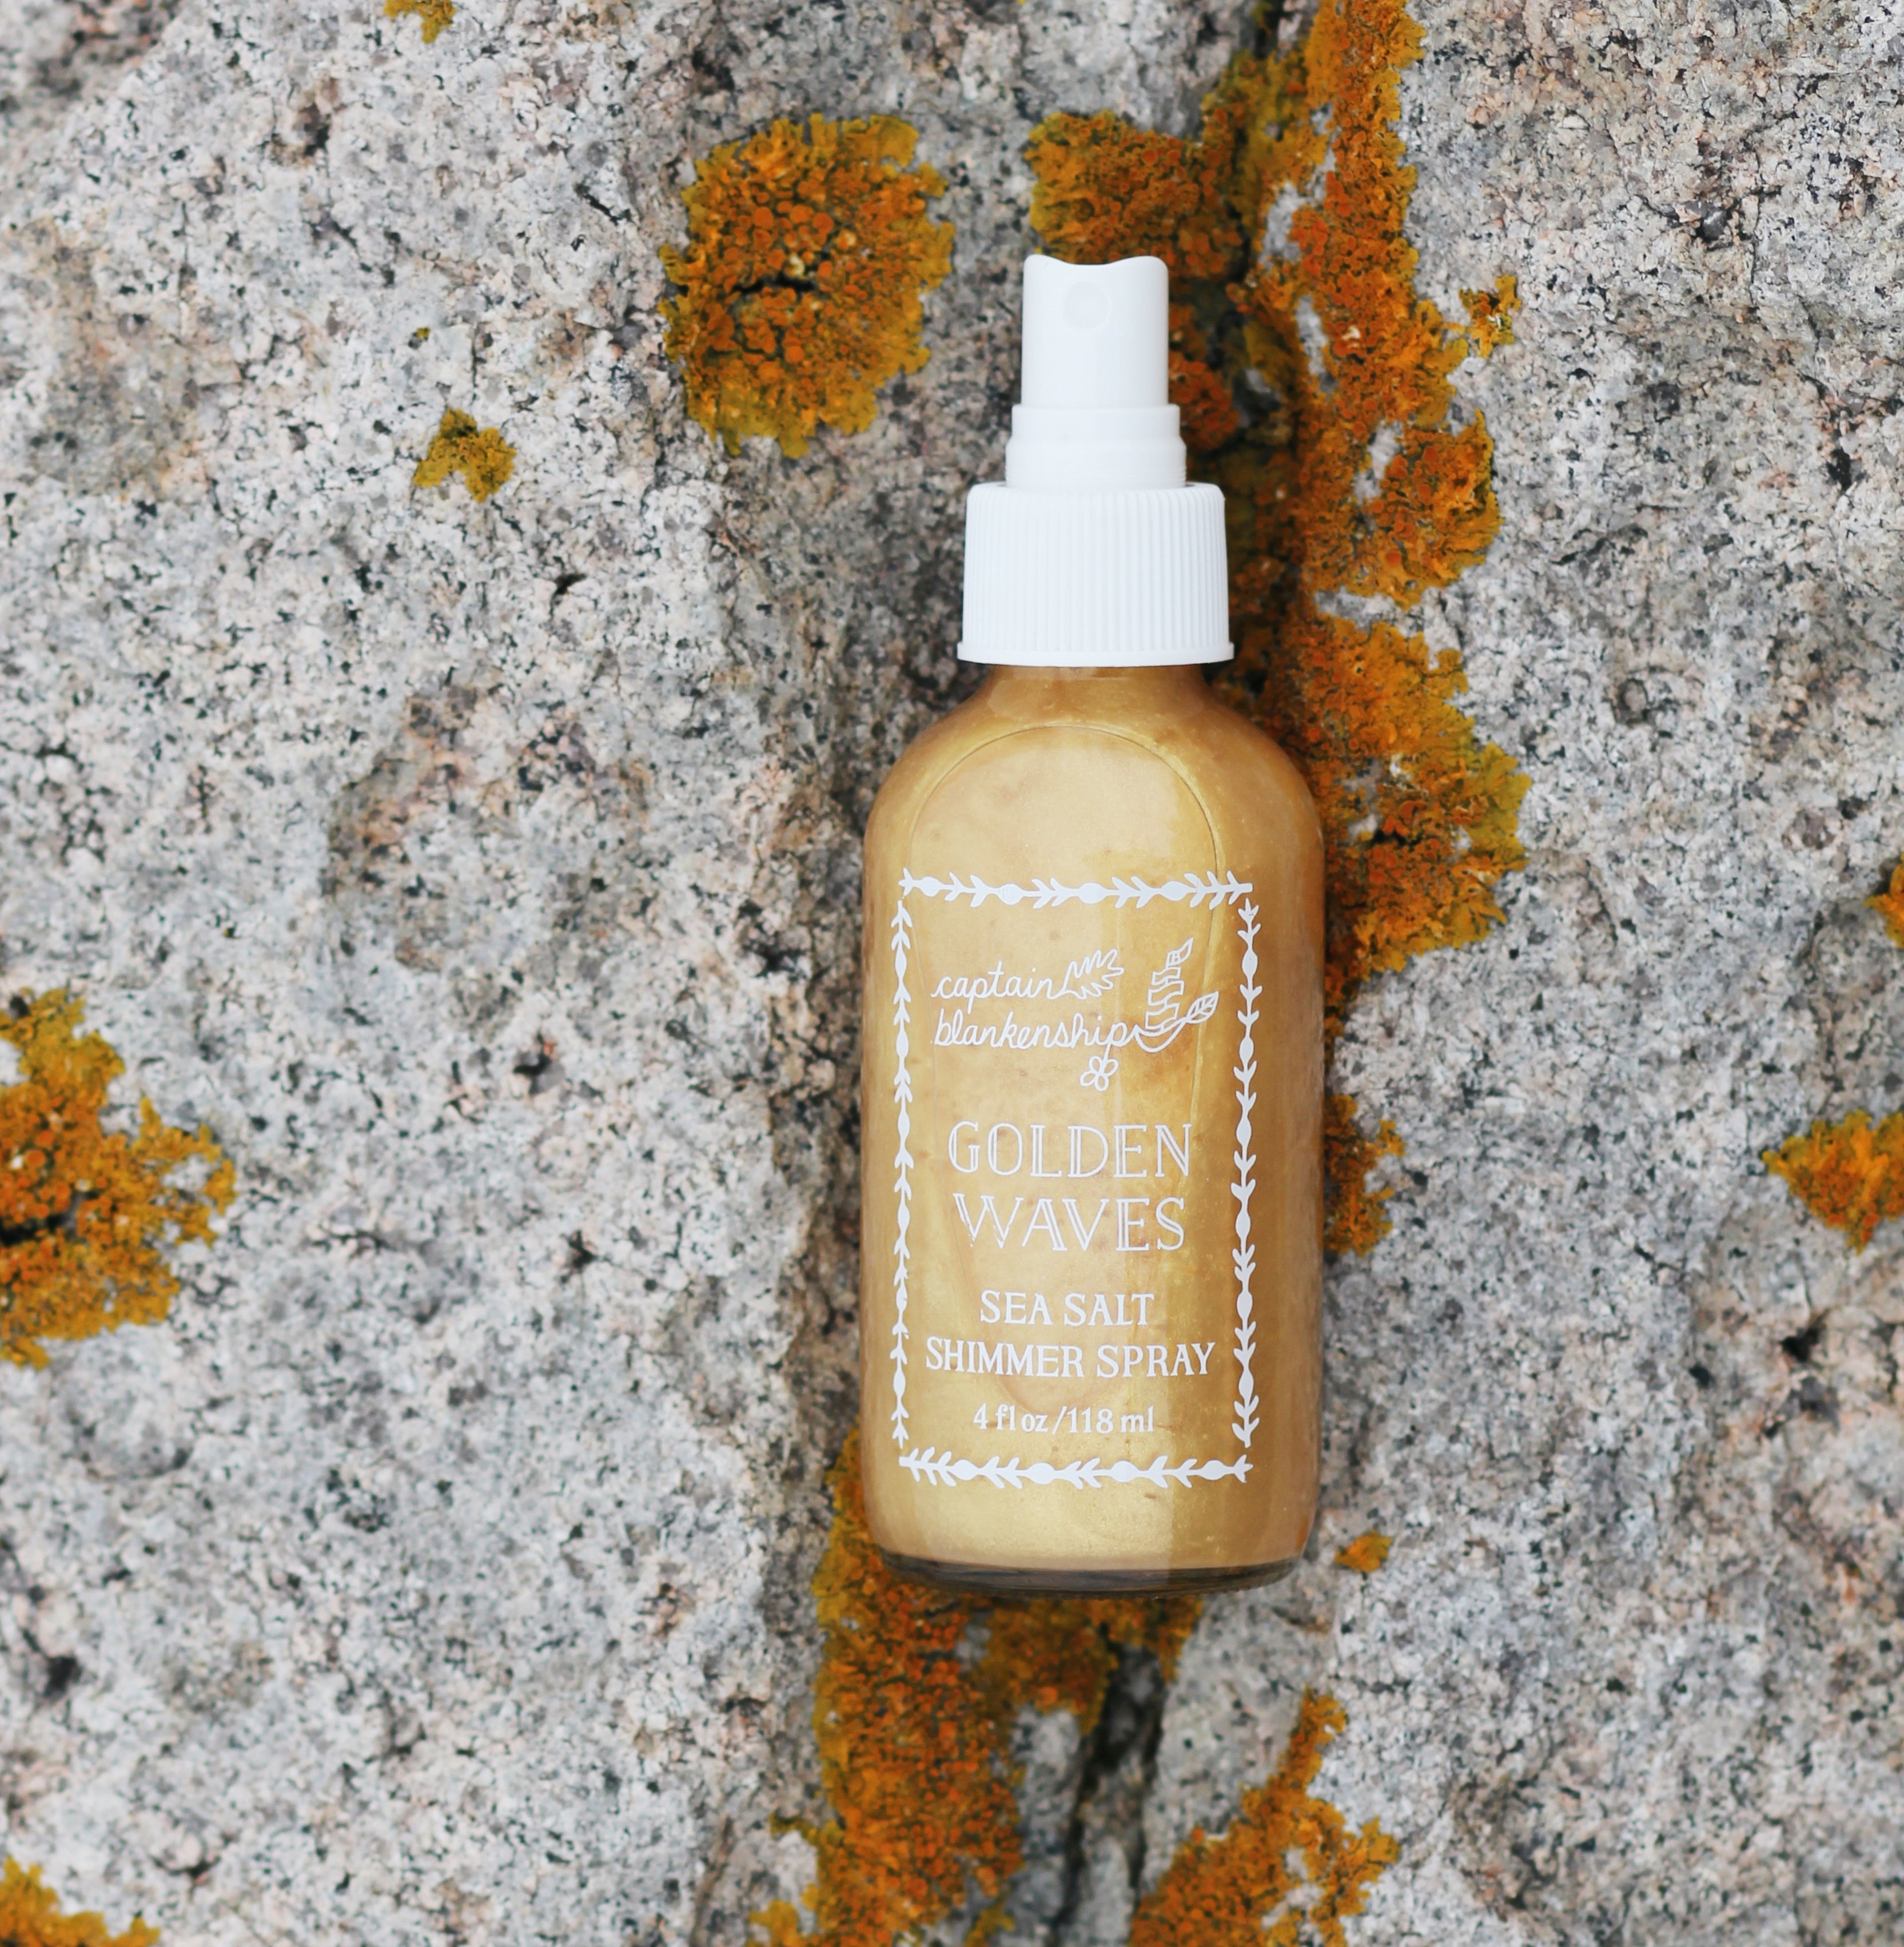 Know these 12 Indie Skin Care Lines- Captain Blakenship Golden Waves